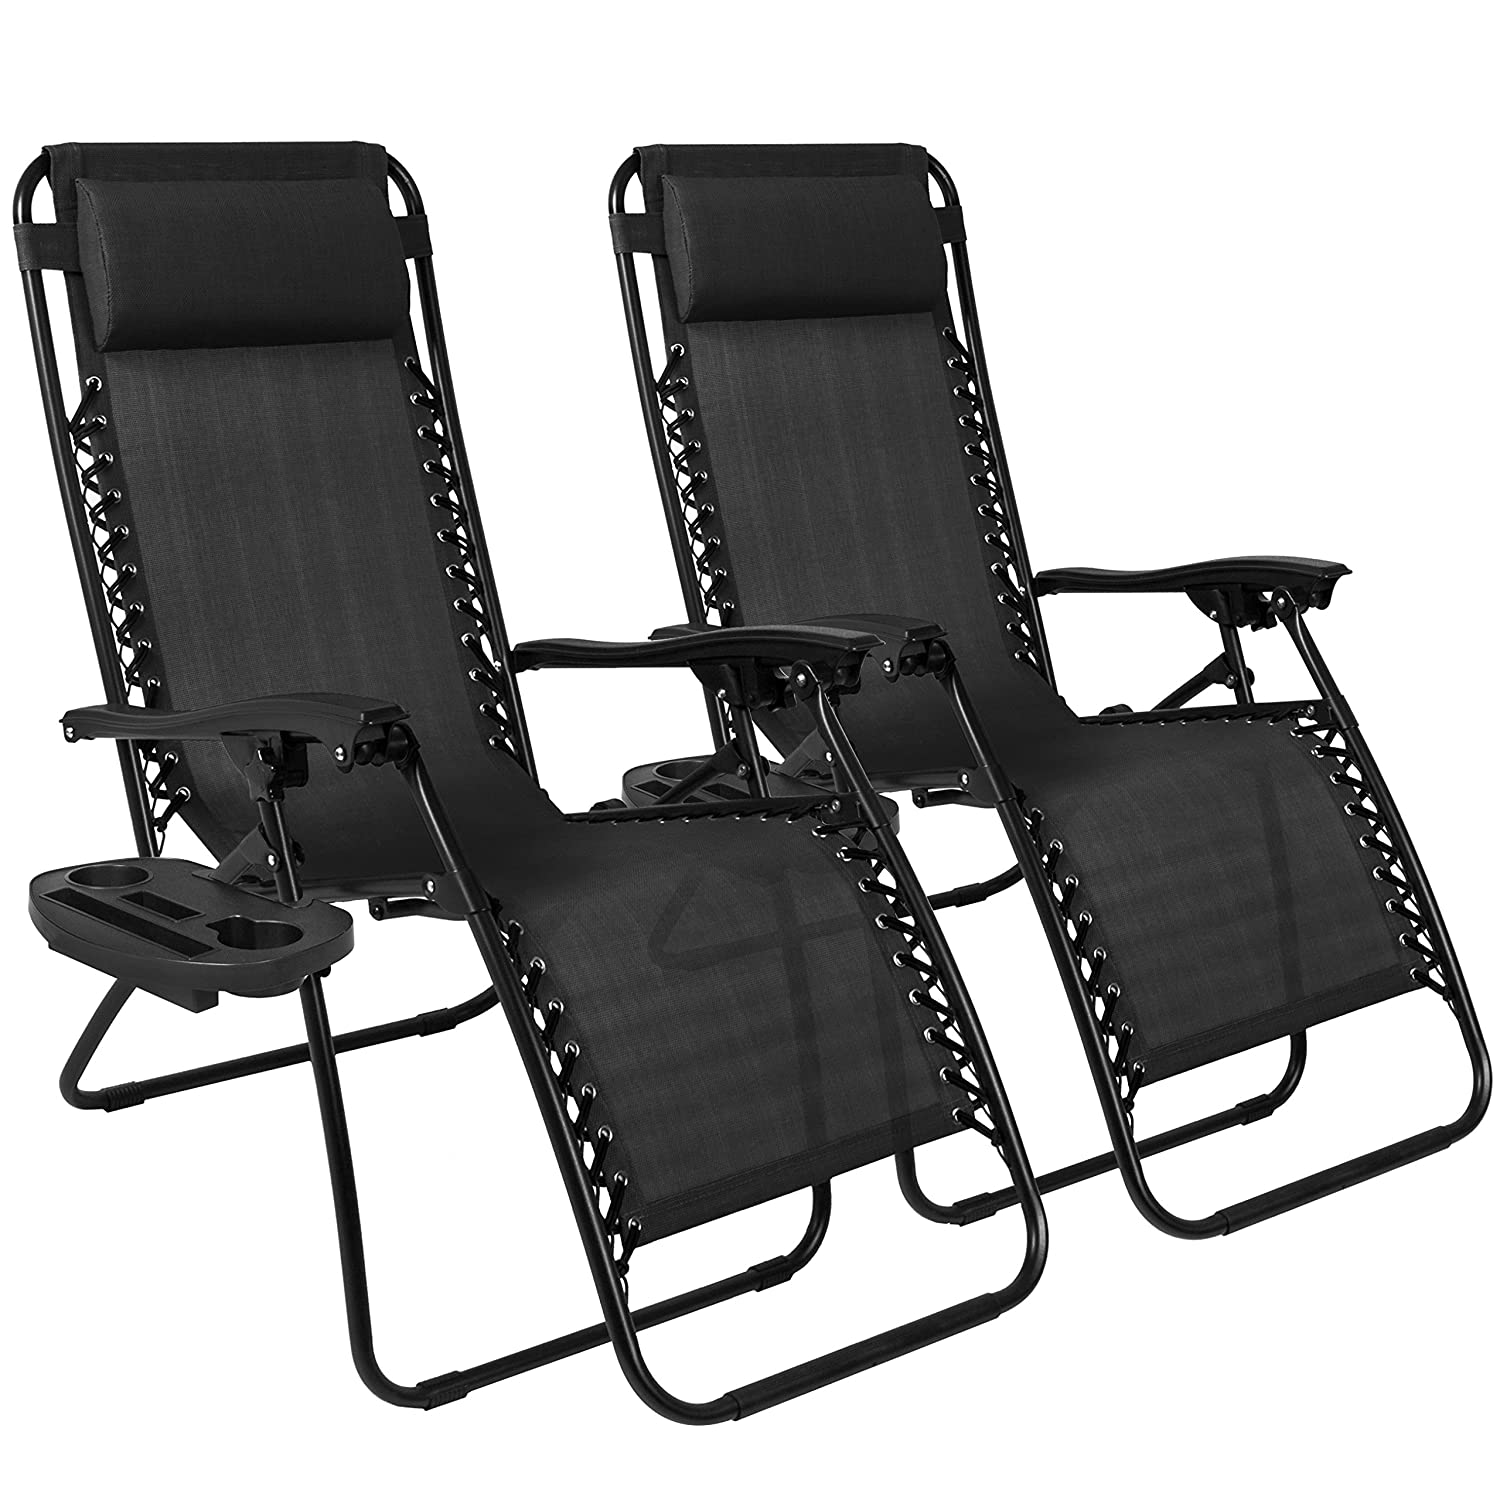 Amazon.com  Best Choice Products Zero Gravity Chairs Case Of (2) Black Lounge Patio Chairs Outdoor Yard Beach New  Garden u0026 Outdoor  sc 1 st  Amazon.com : patio recliner lounge chair - islam-shia.org